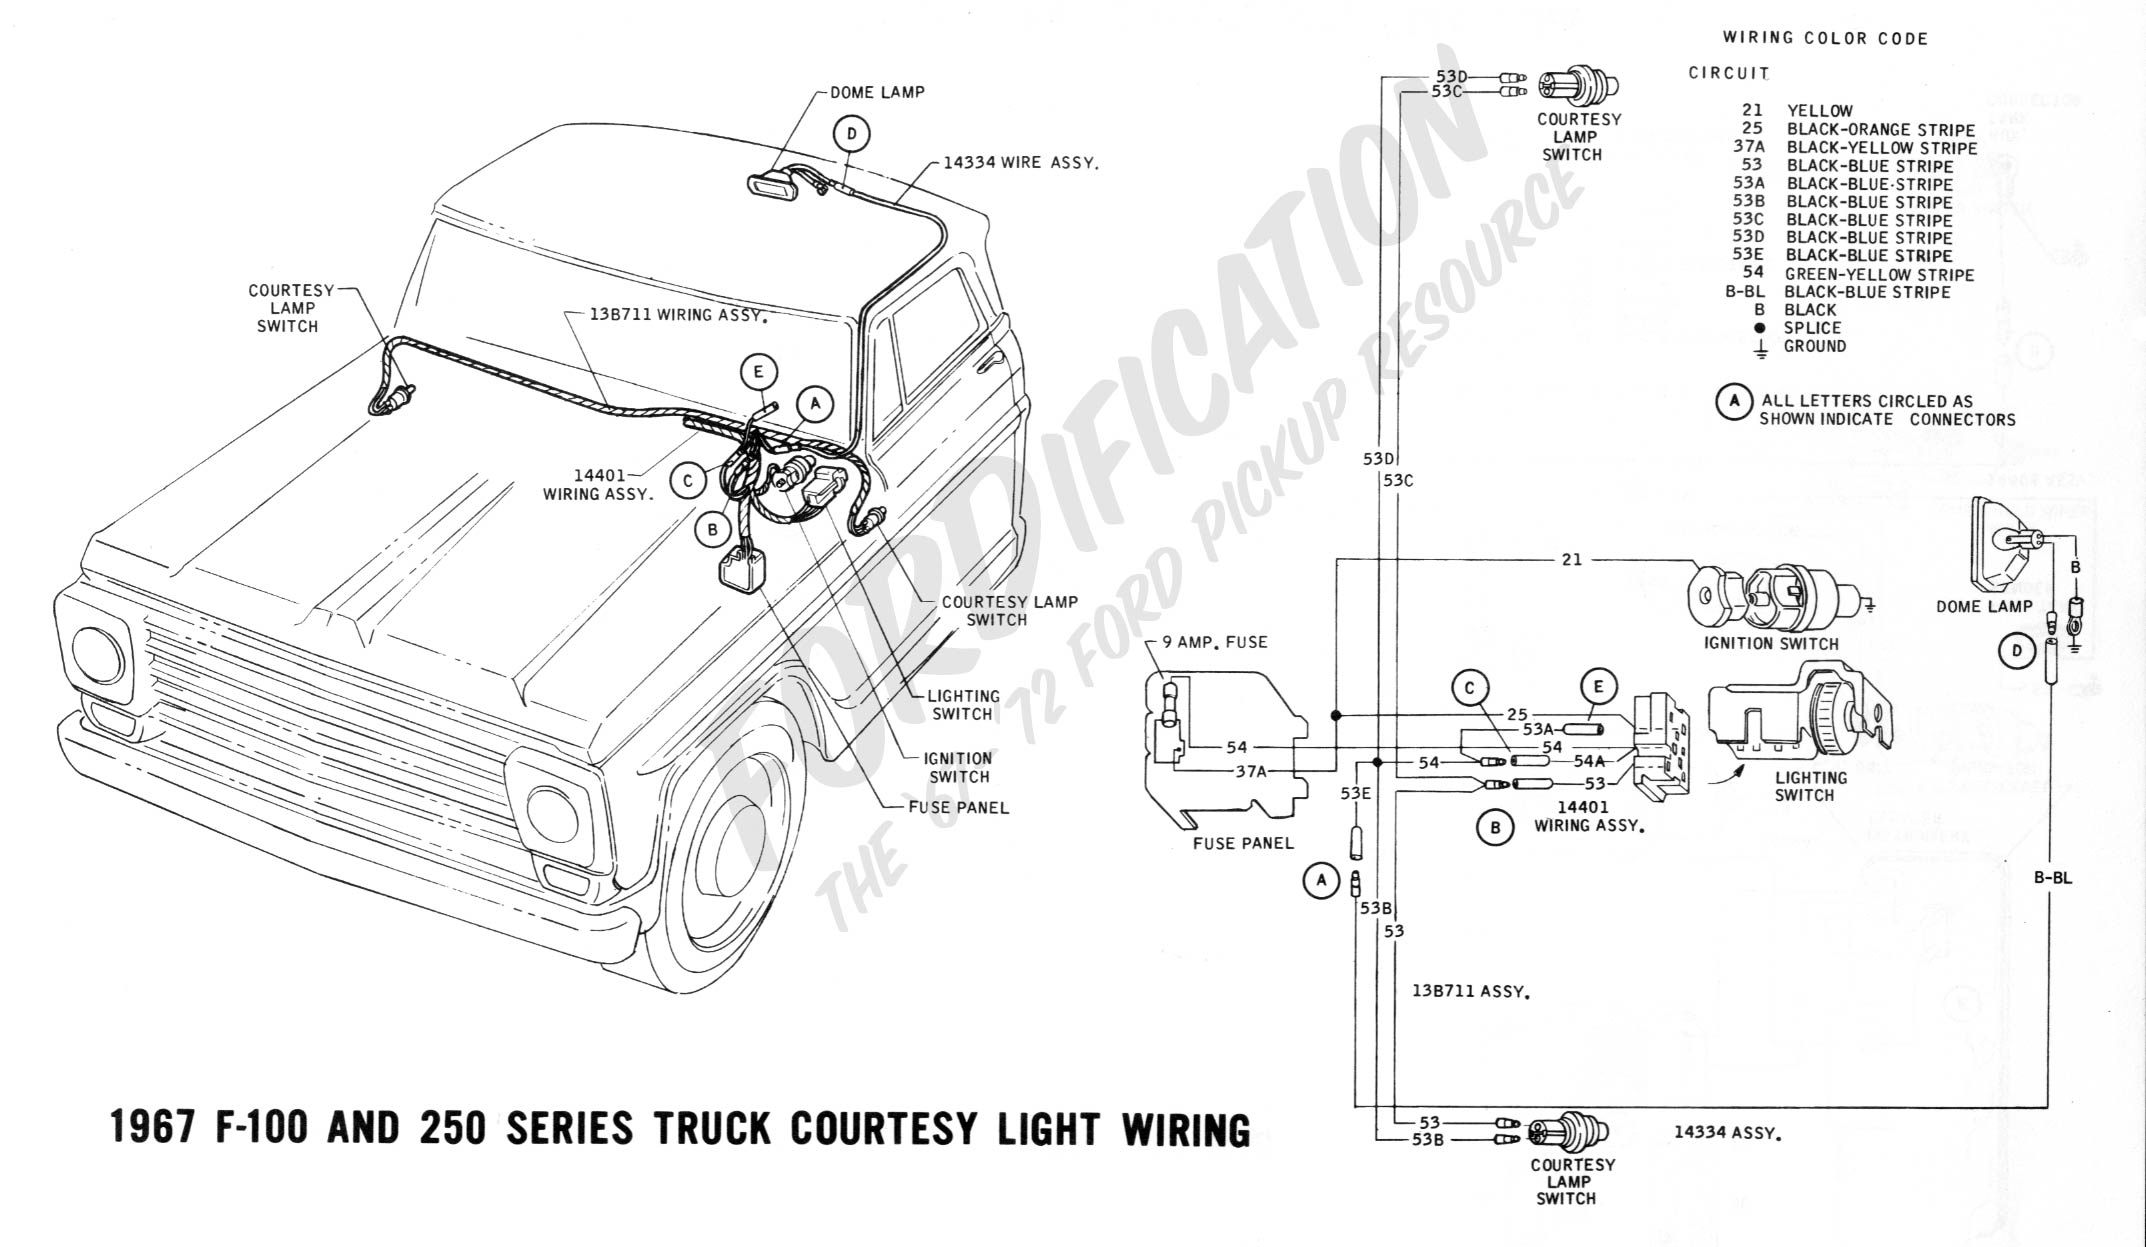 ford truck technical drawings and schematics section h wiring rh fordification com 1967 Ford F100 Wiring Diagram 1967 VW Wiring Diagram